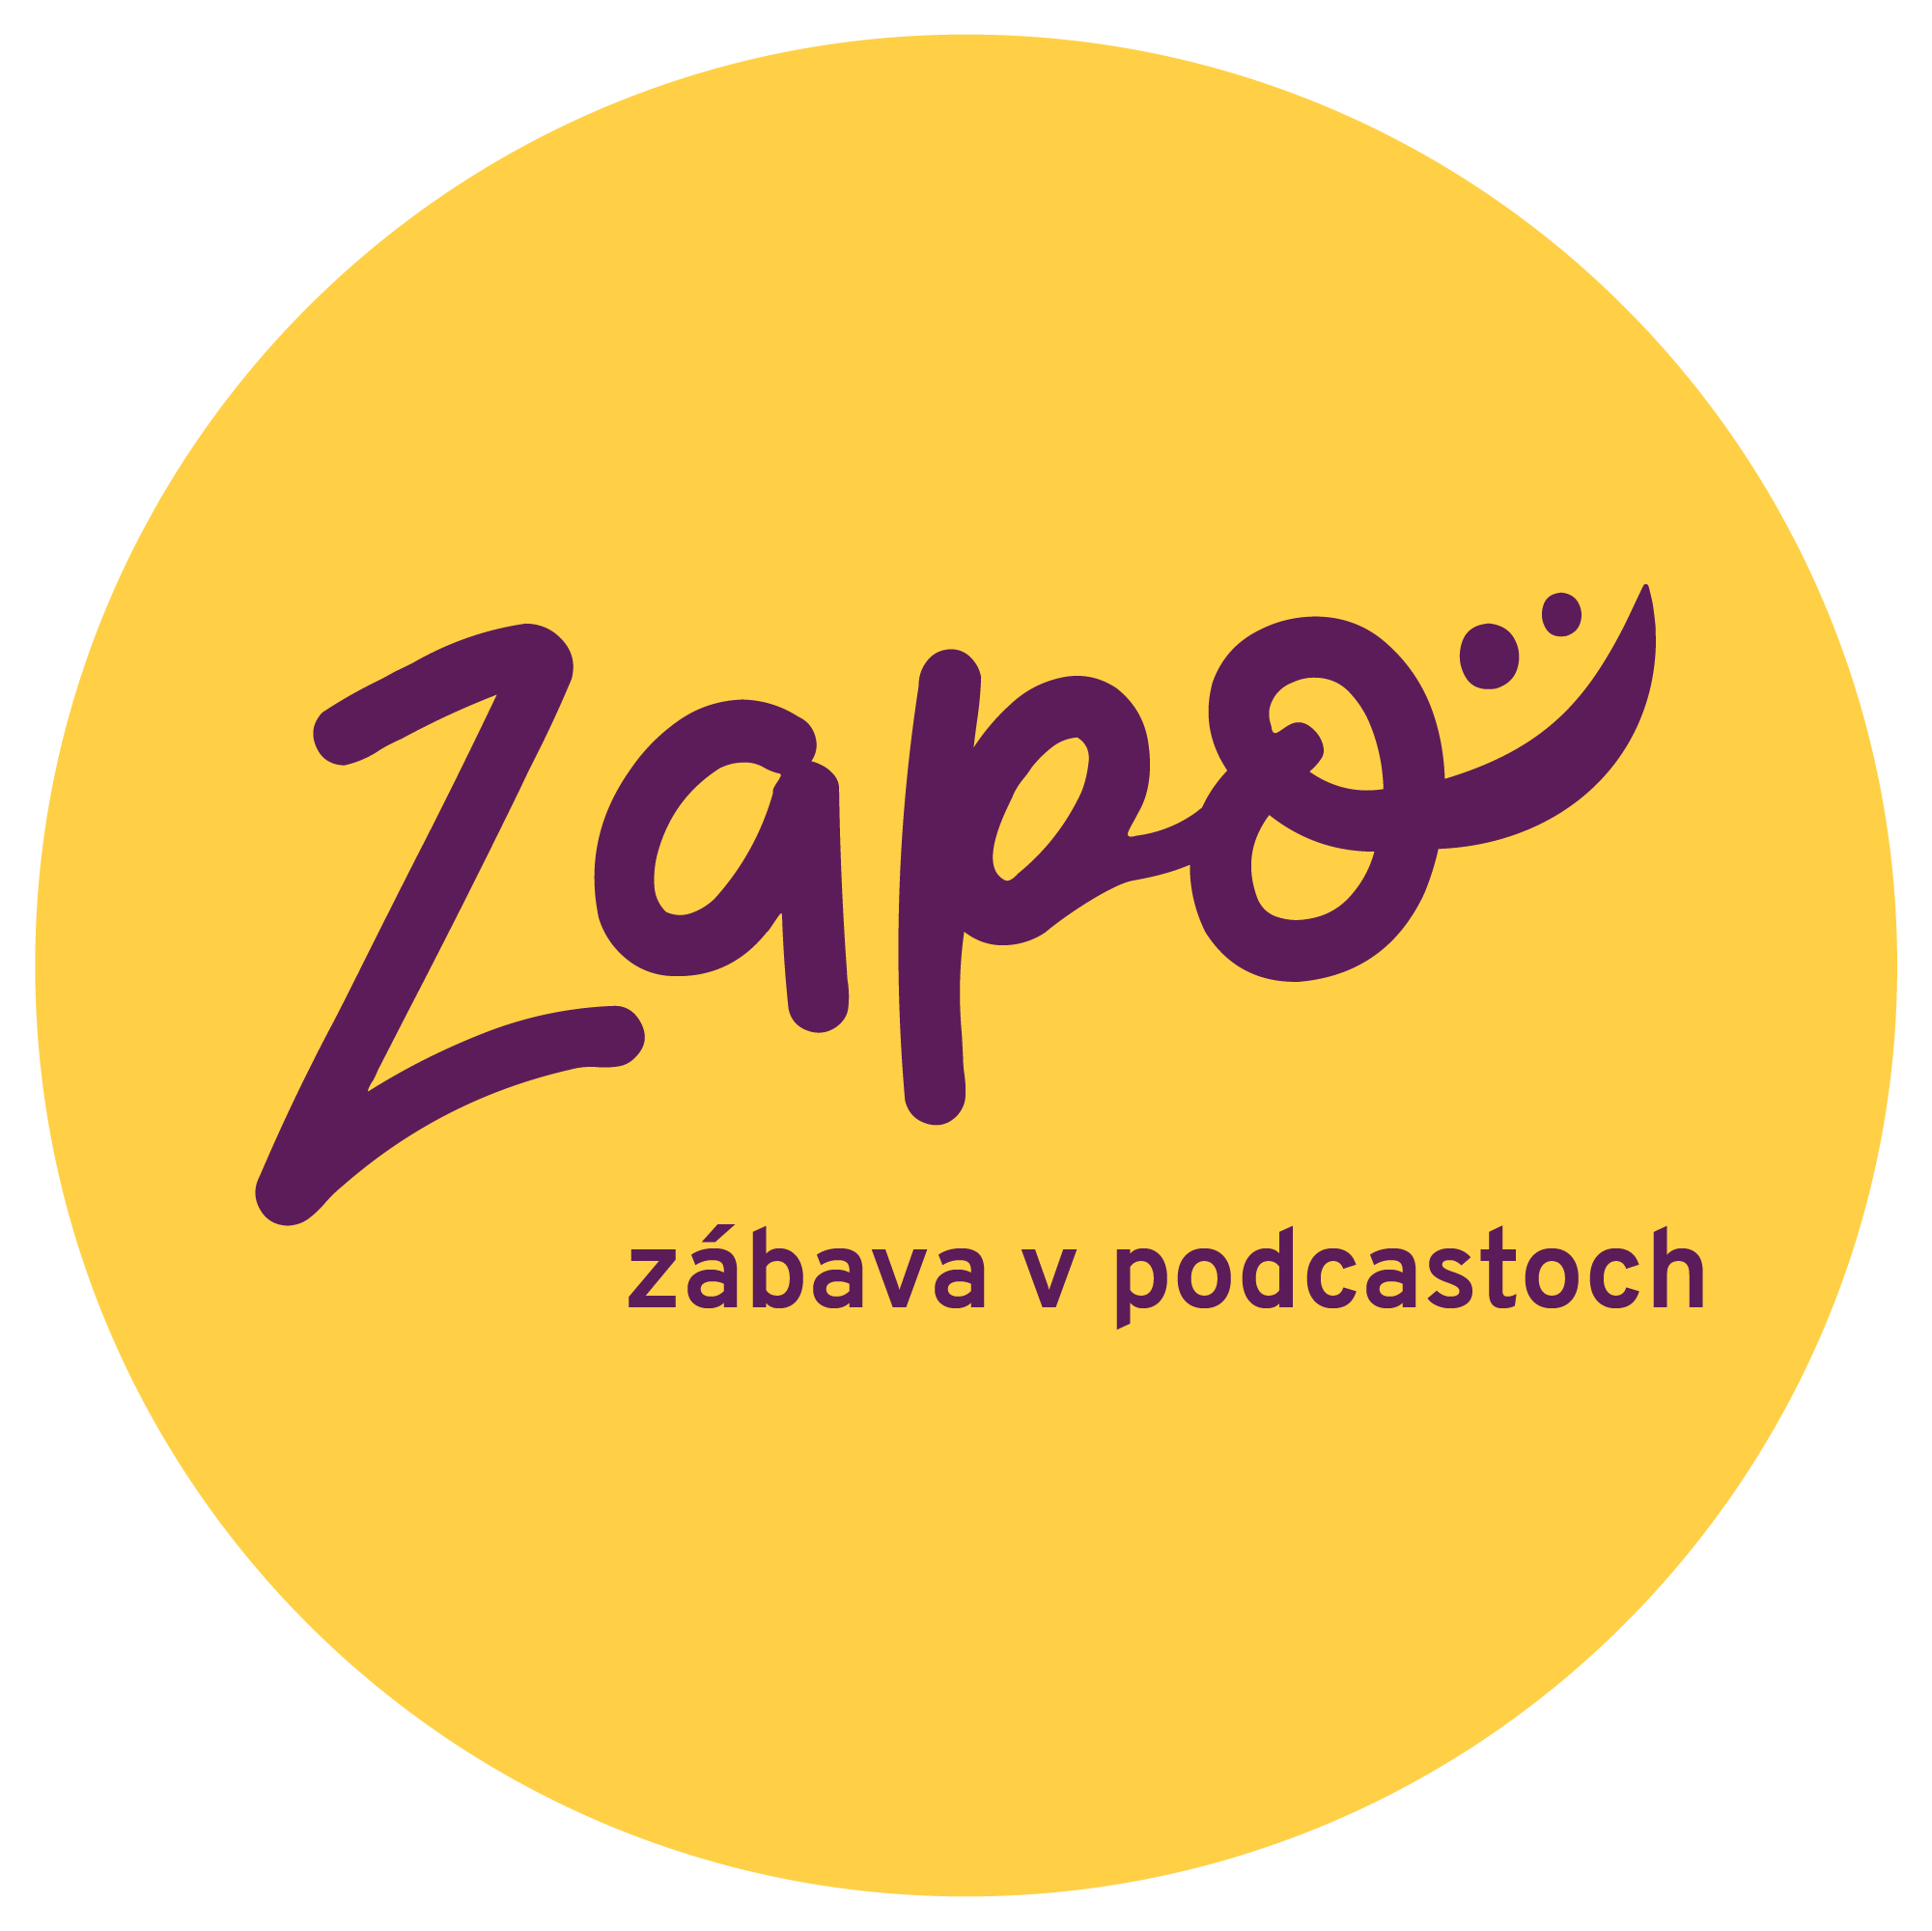 Zapo official